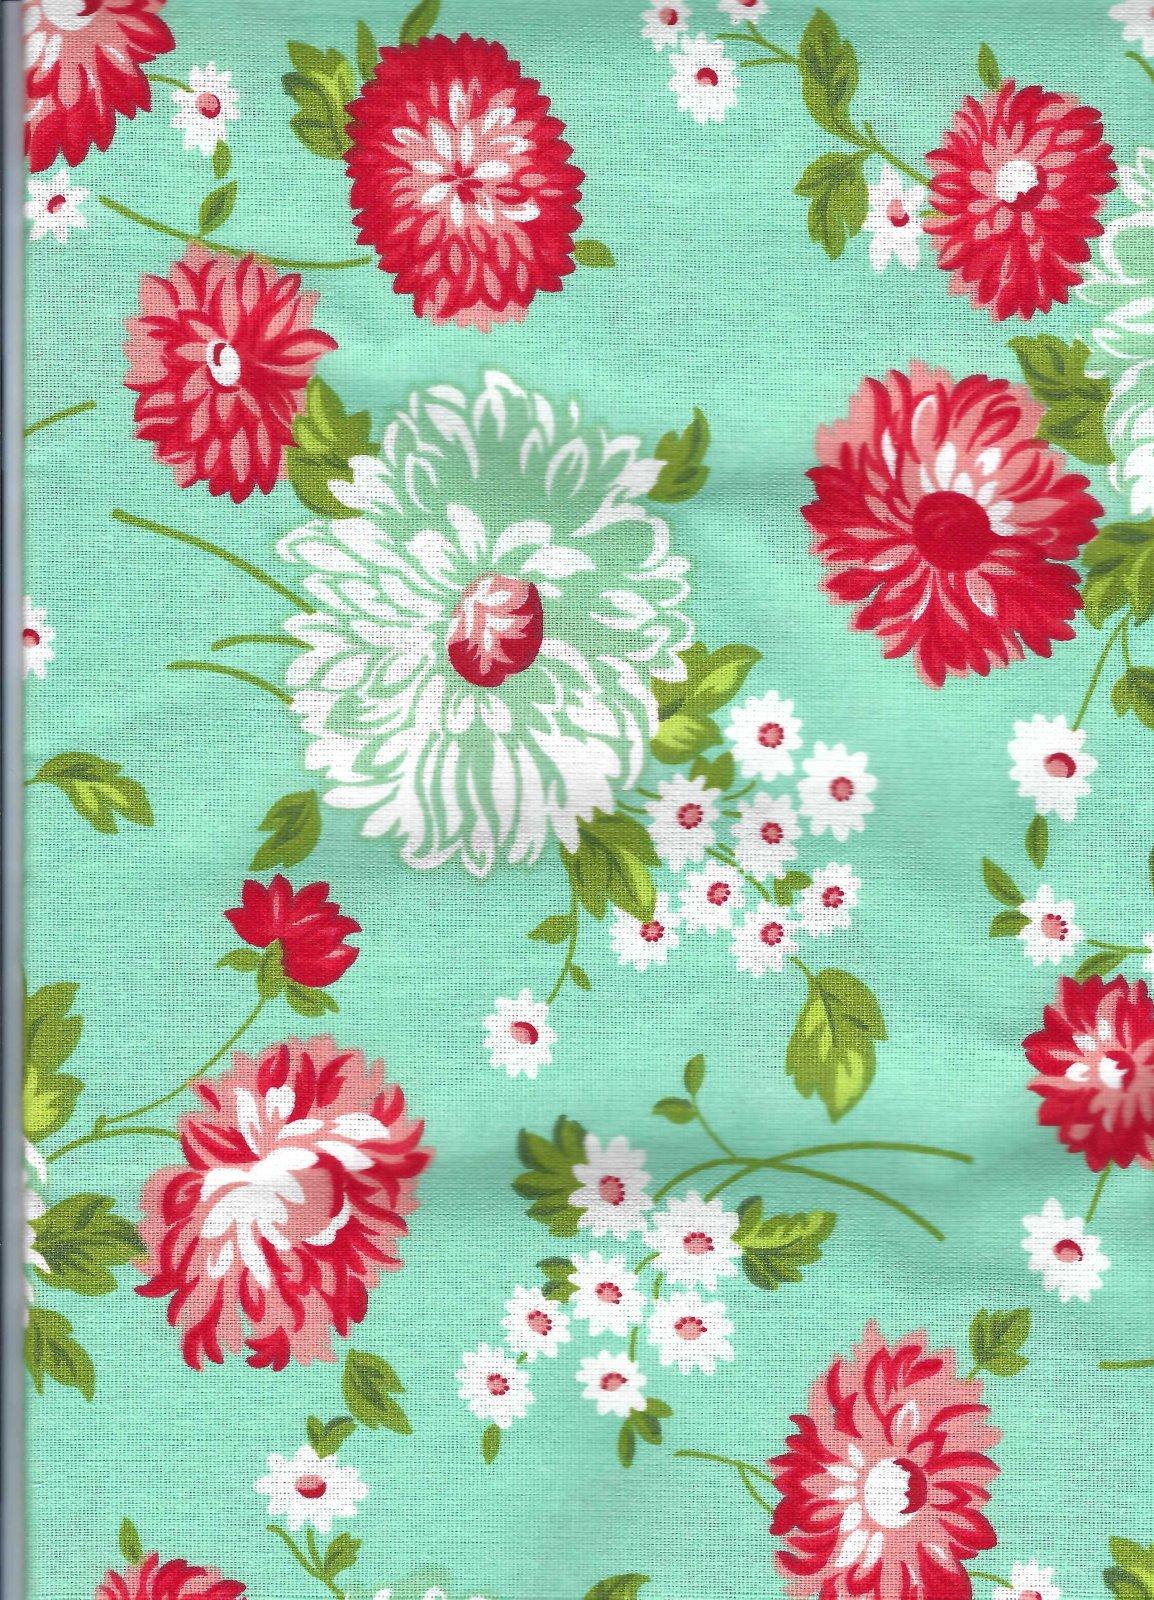 Toweling - 3 yards - Floral